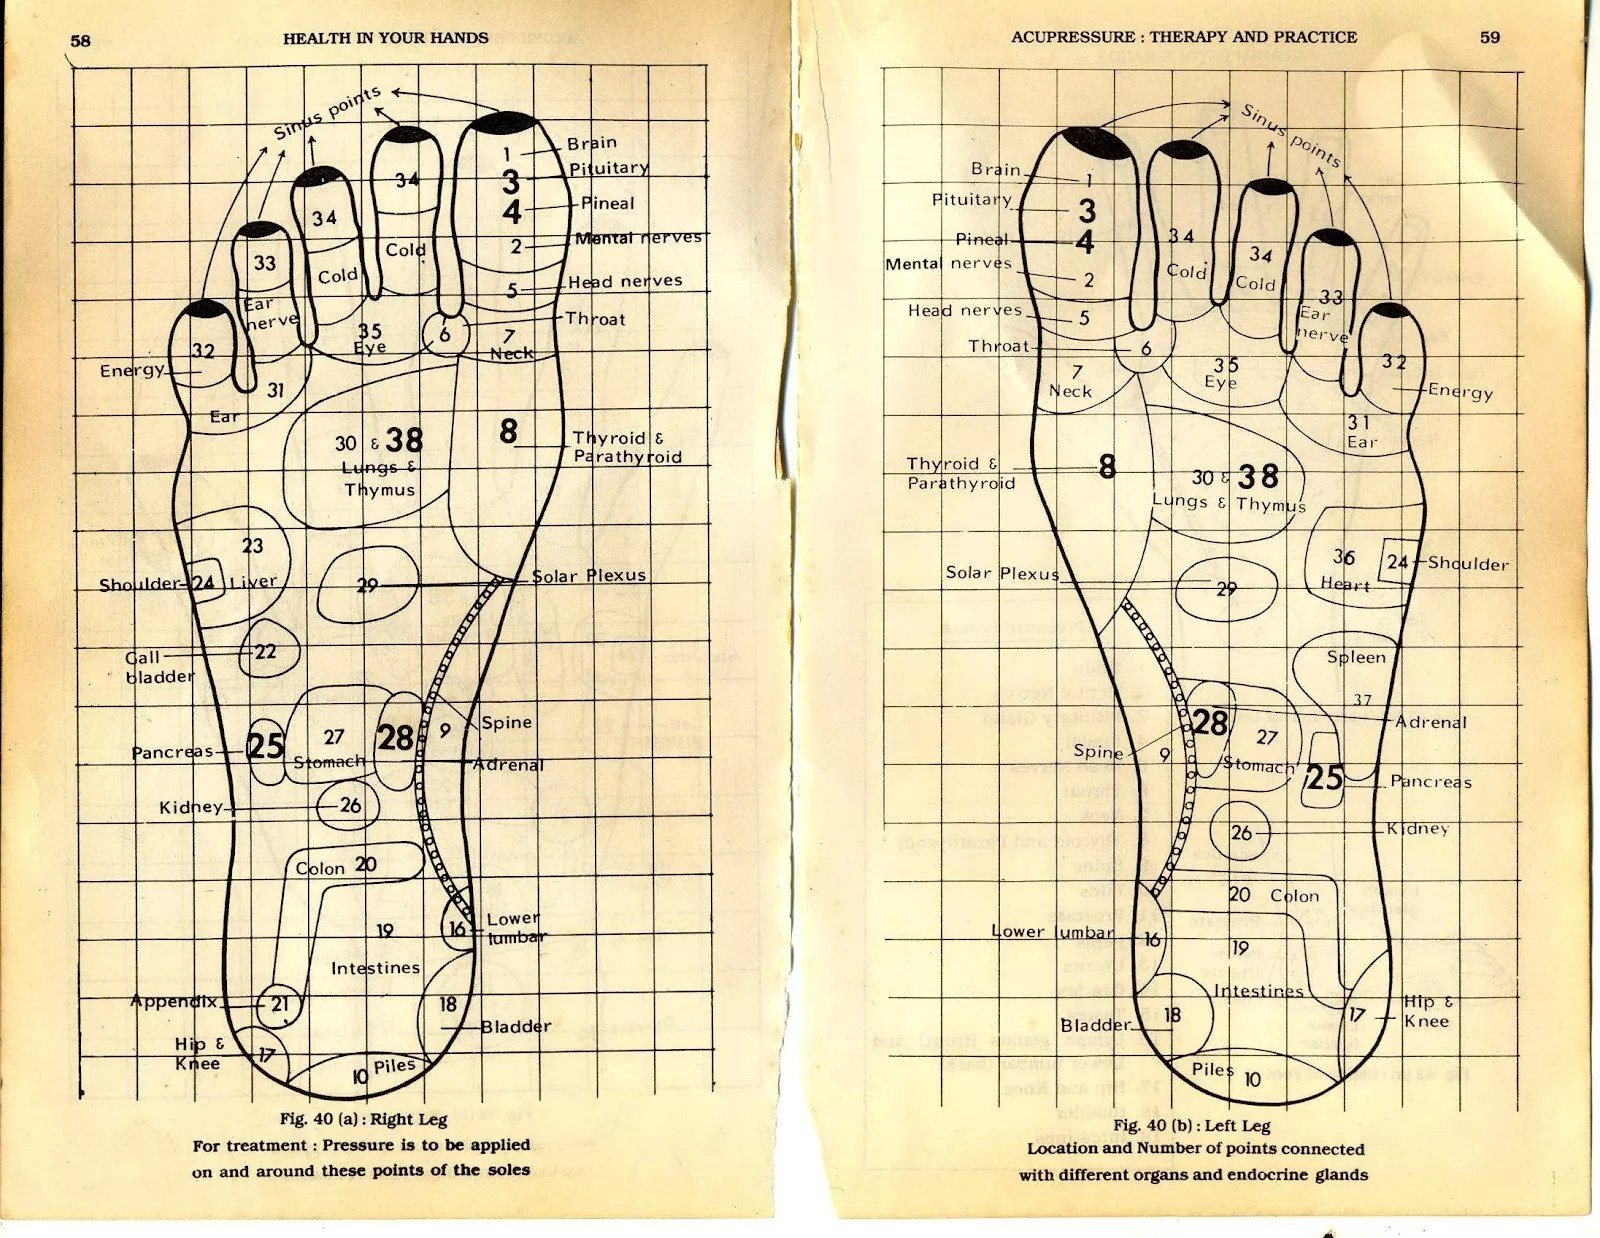 pressure points diagram massage hurst competition plus shifter your foot has the full map of body and here is how to read it move on tops sides feet this where knowledge reflexology most useful